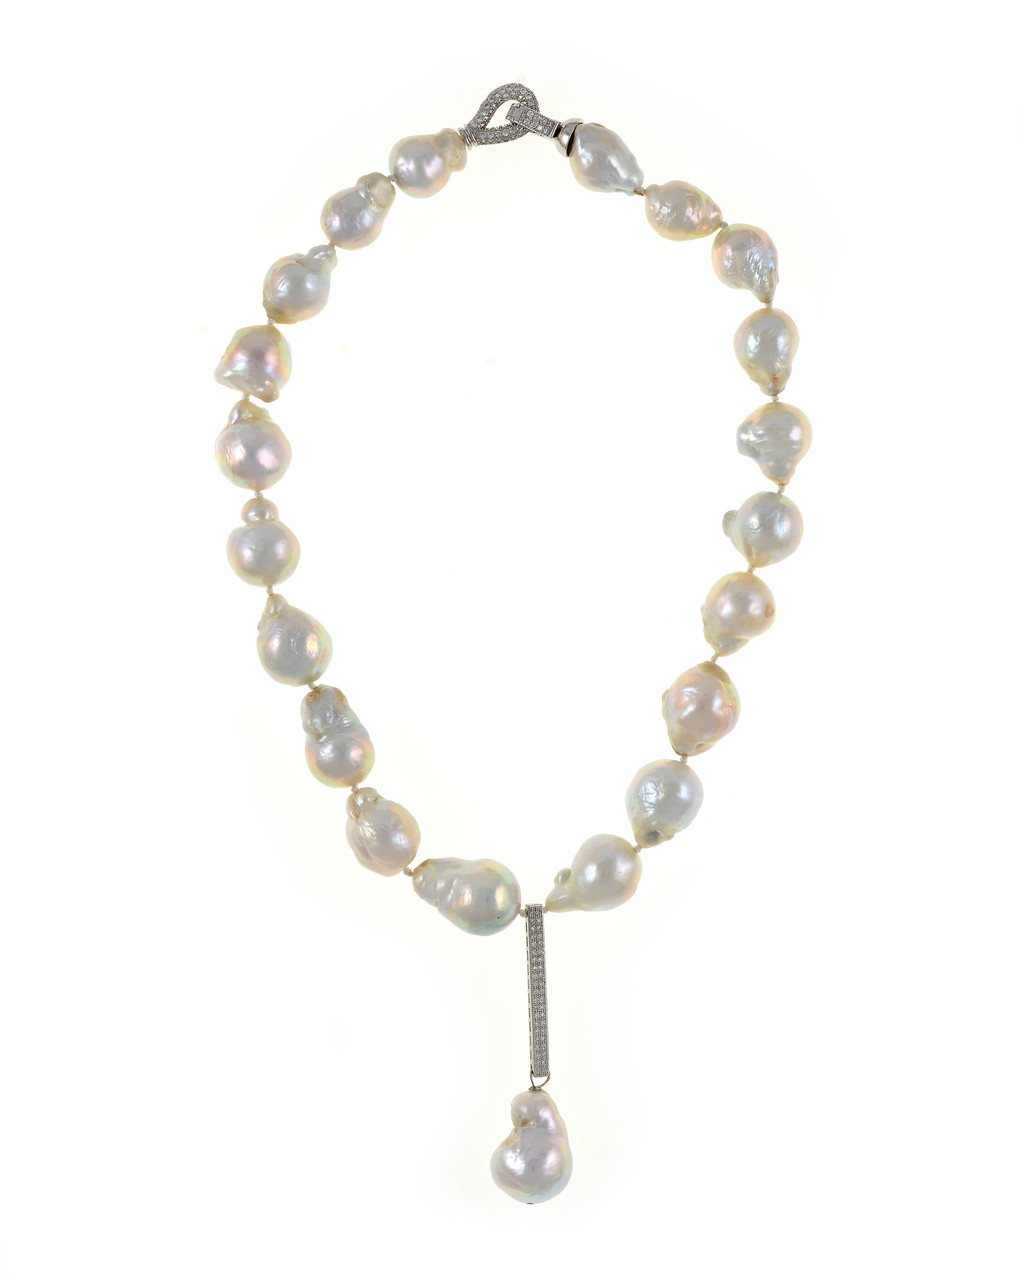 Silver Gray Statement Choker with Biwa cross pearls and Freshwater pearls Frost